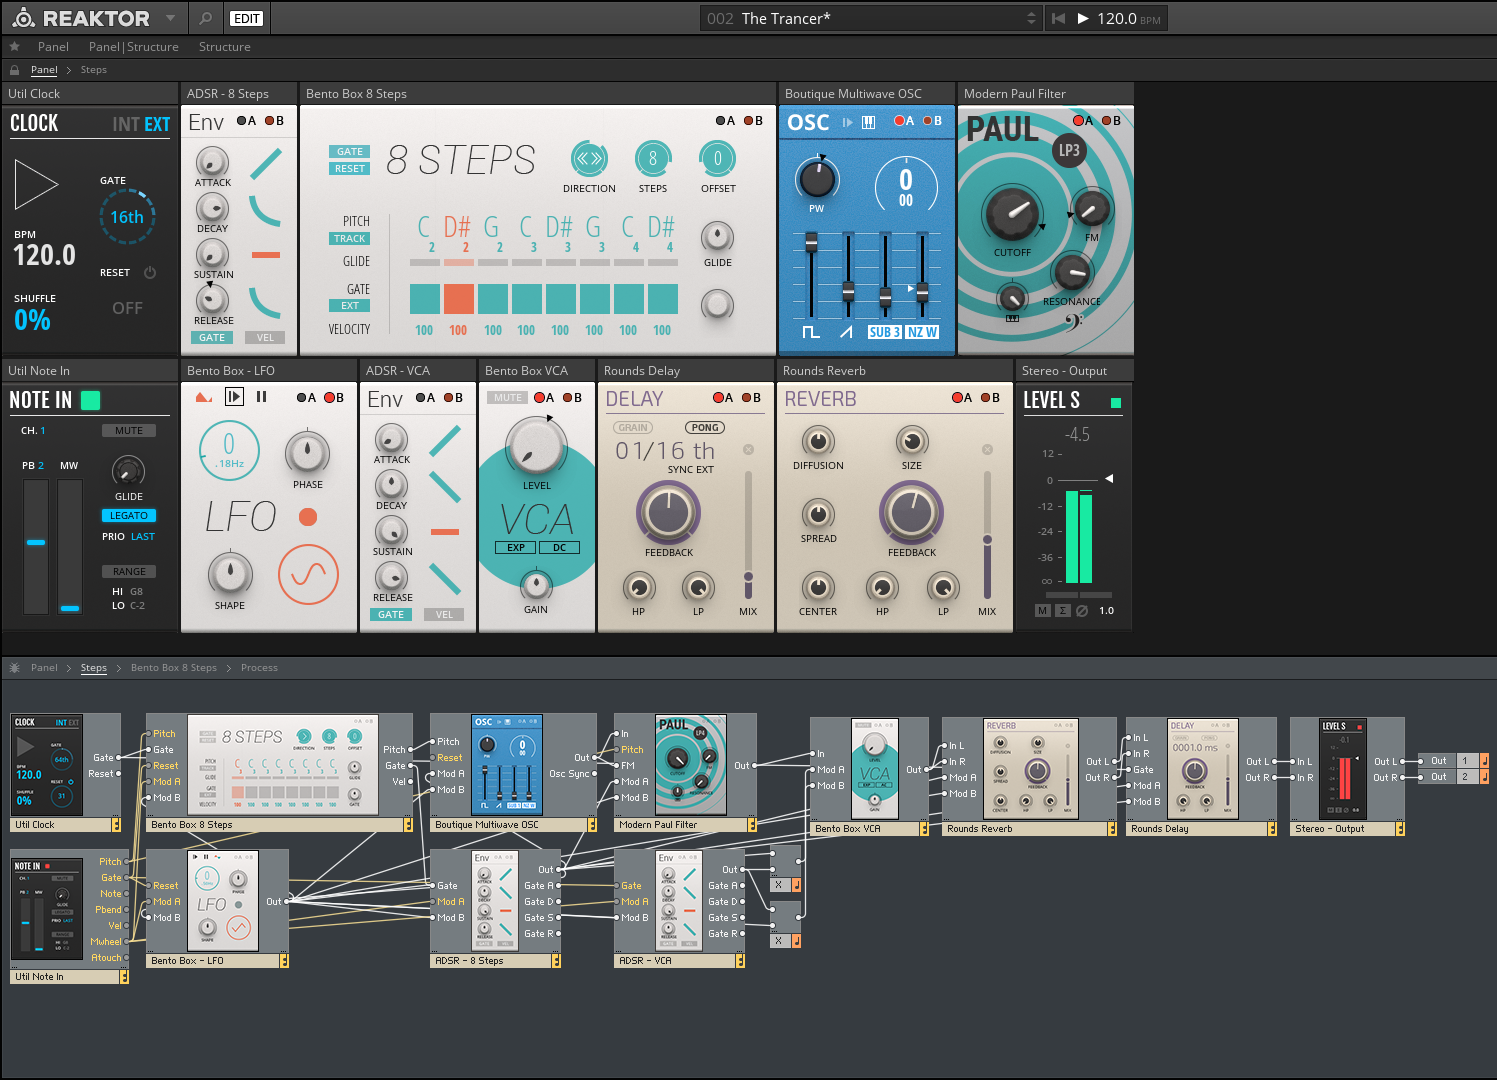 reaktor 6 player